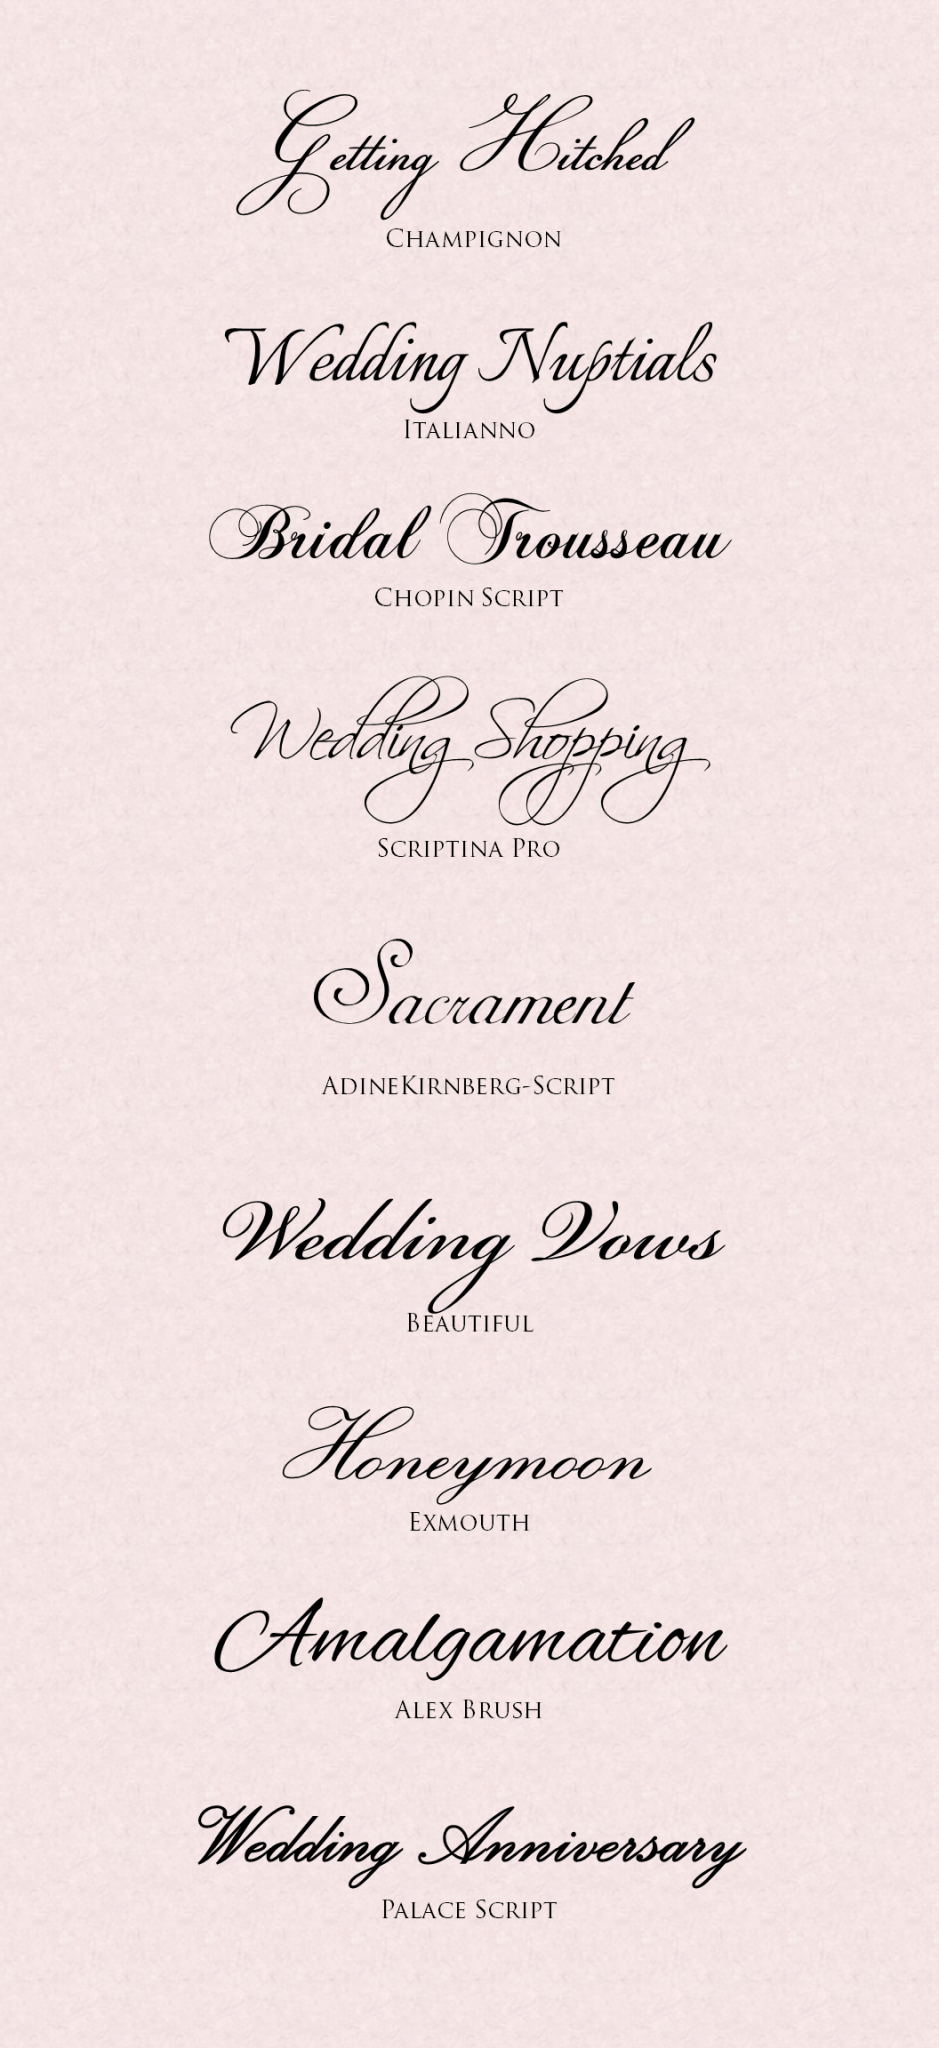 Wedding Invitation Fonts Featured On Memorable Indian Weddings - Indian Wedding PNG Fonts